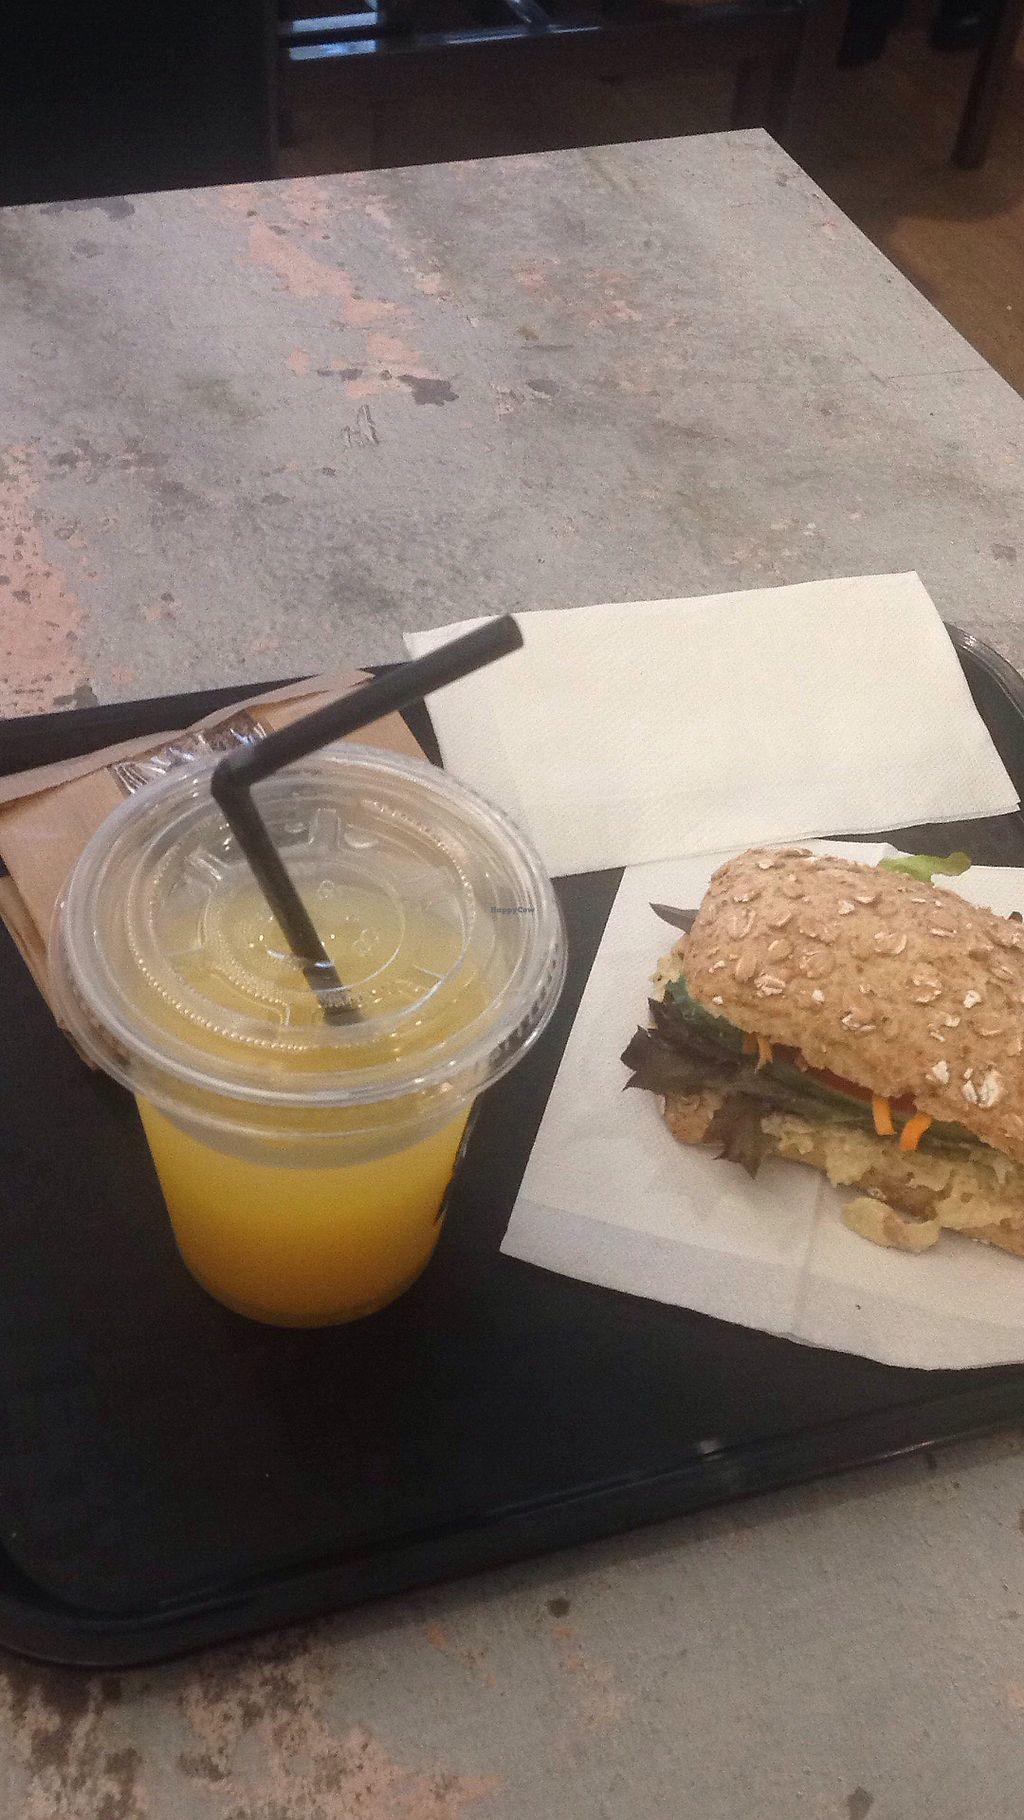 """Photo of Organic Foodbar  by <a href=""""/members/profile/Cakerino"""">Cakerino</a> <br/>Freshly squeezed juice, samdwich, 'kokosmacroon' : 10euros <br/> August 26, 2017  - <a href='/contact/abuse/image/88982/297415'>Report</a>"""